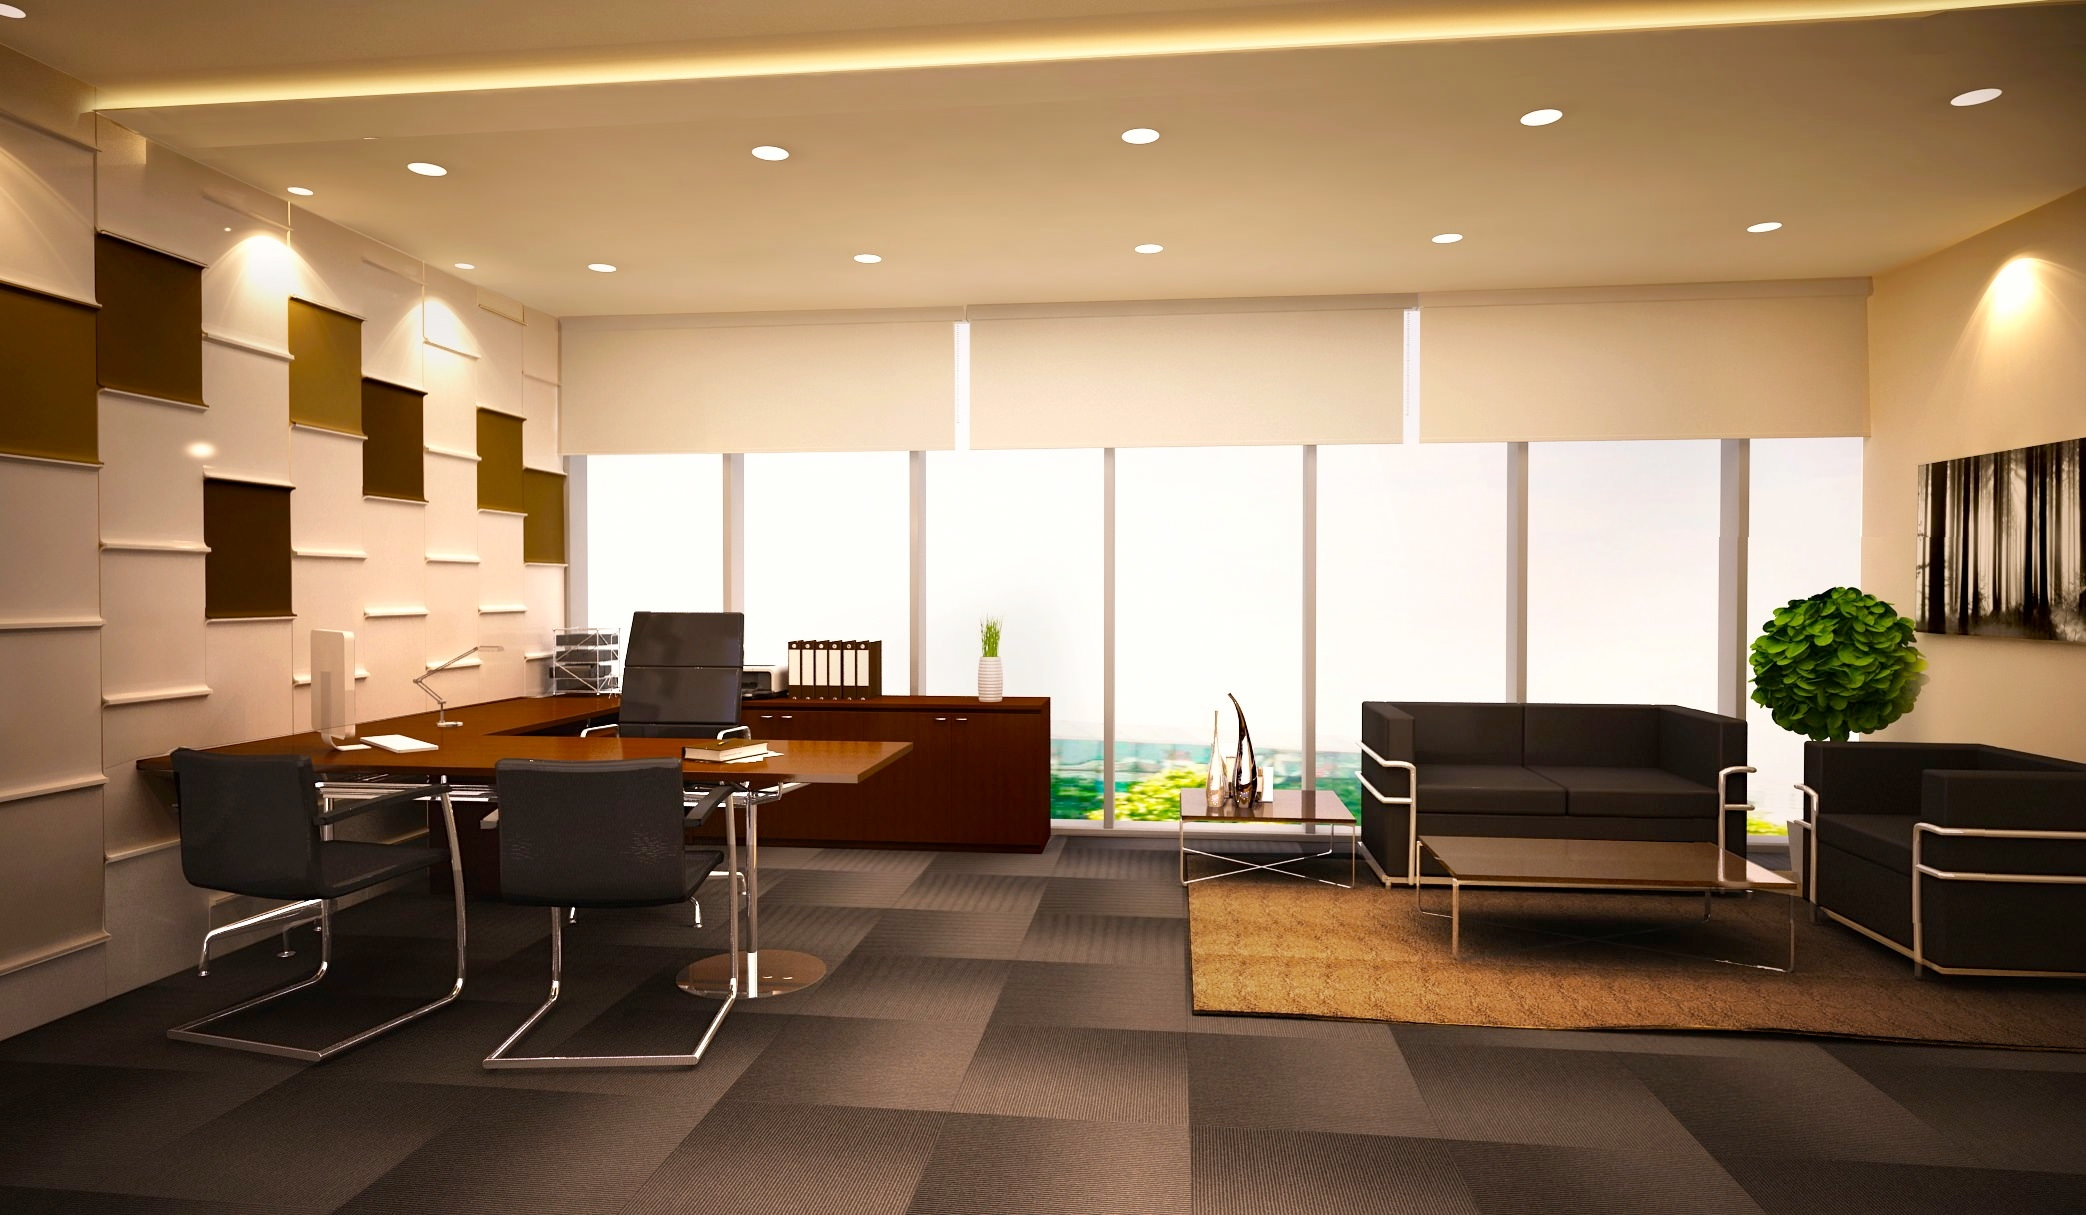 19 minimalist office designs decorating ideas design for Office space design